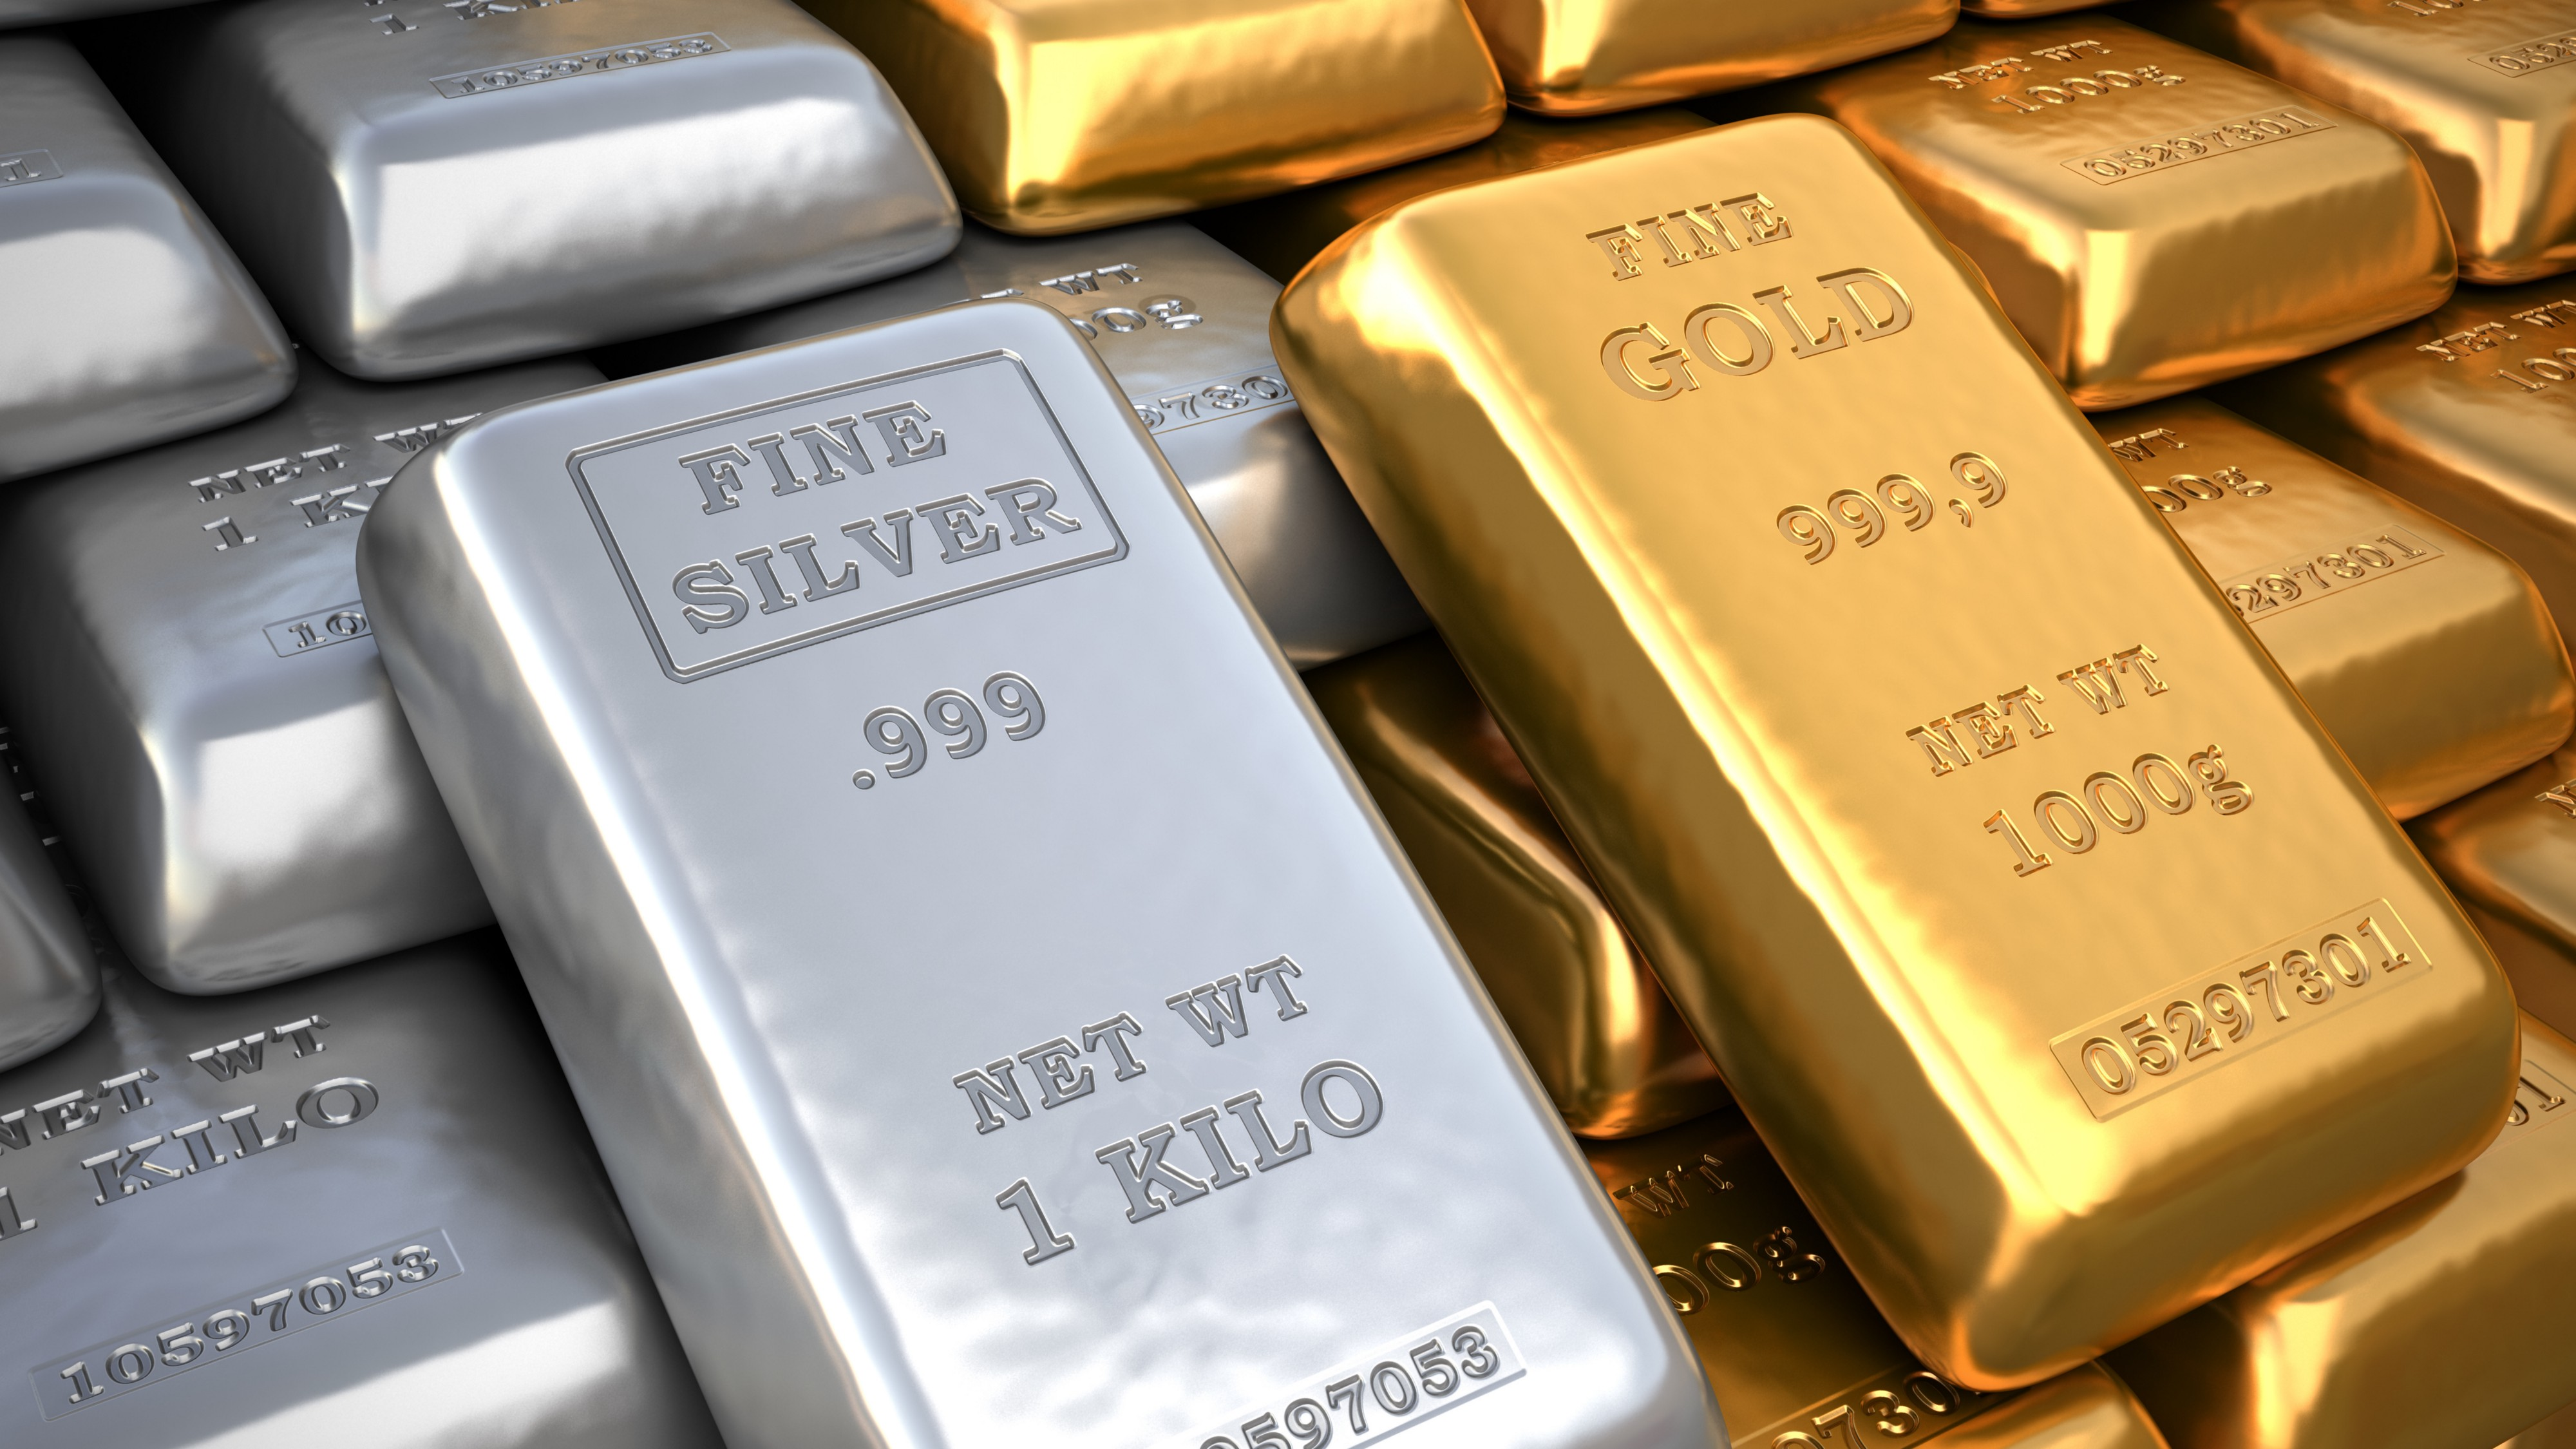 Gold, silver prices see safe-haven demand on global economic worries